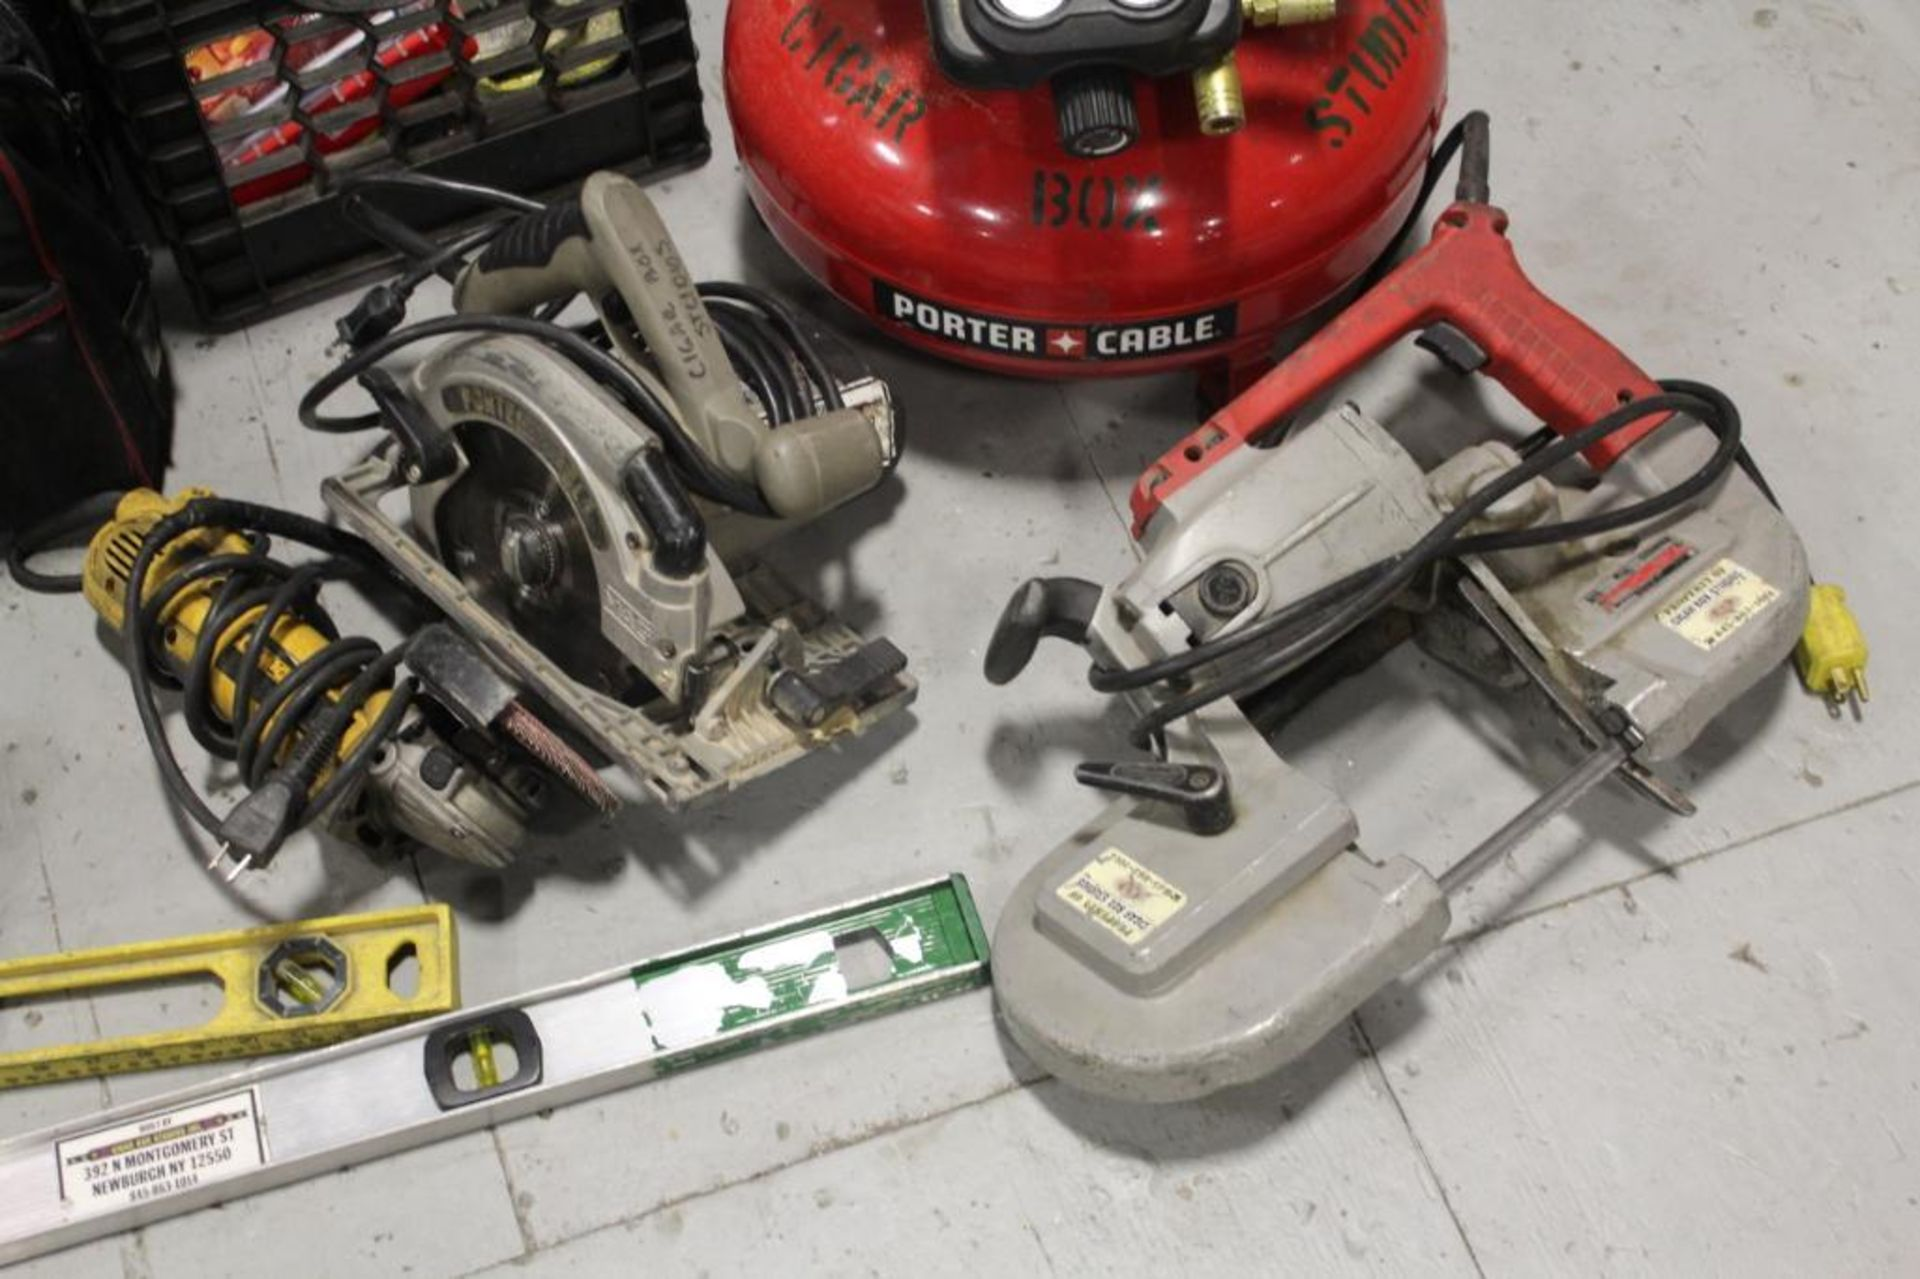 Greenlee tool box w/contents - Image 6 of 7